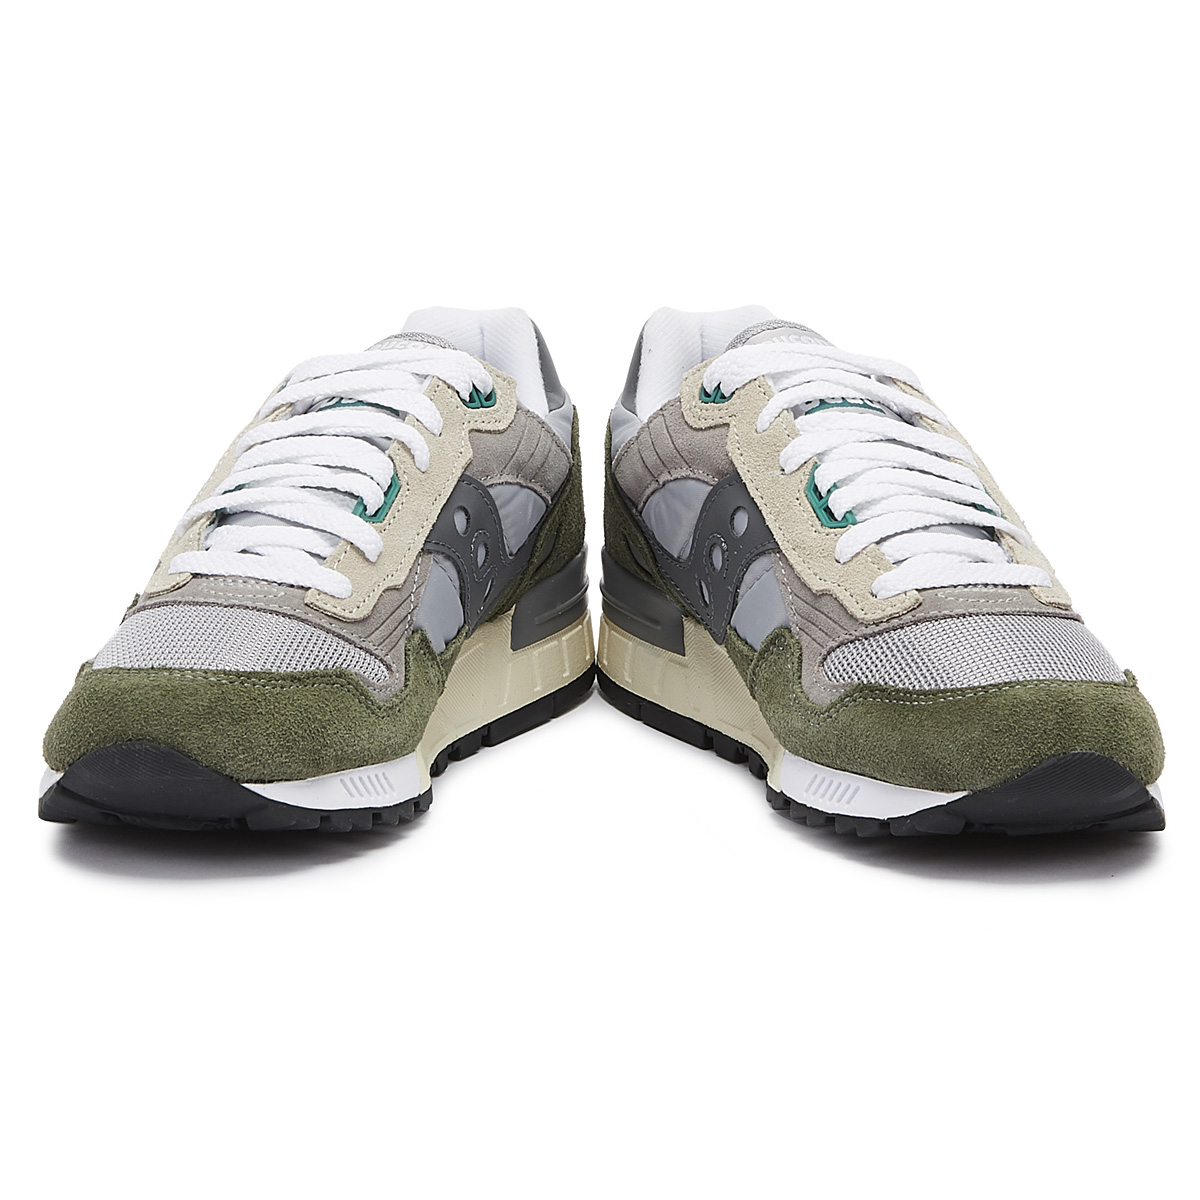 35ae6d8a Details about Saucony Shadow 5000 Vintage Grey / Green Trainers Sport  Casual Lace Up Shoes